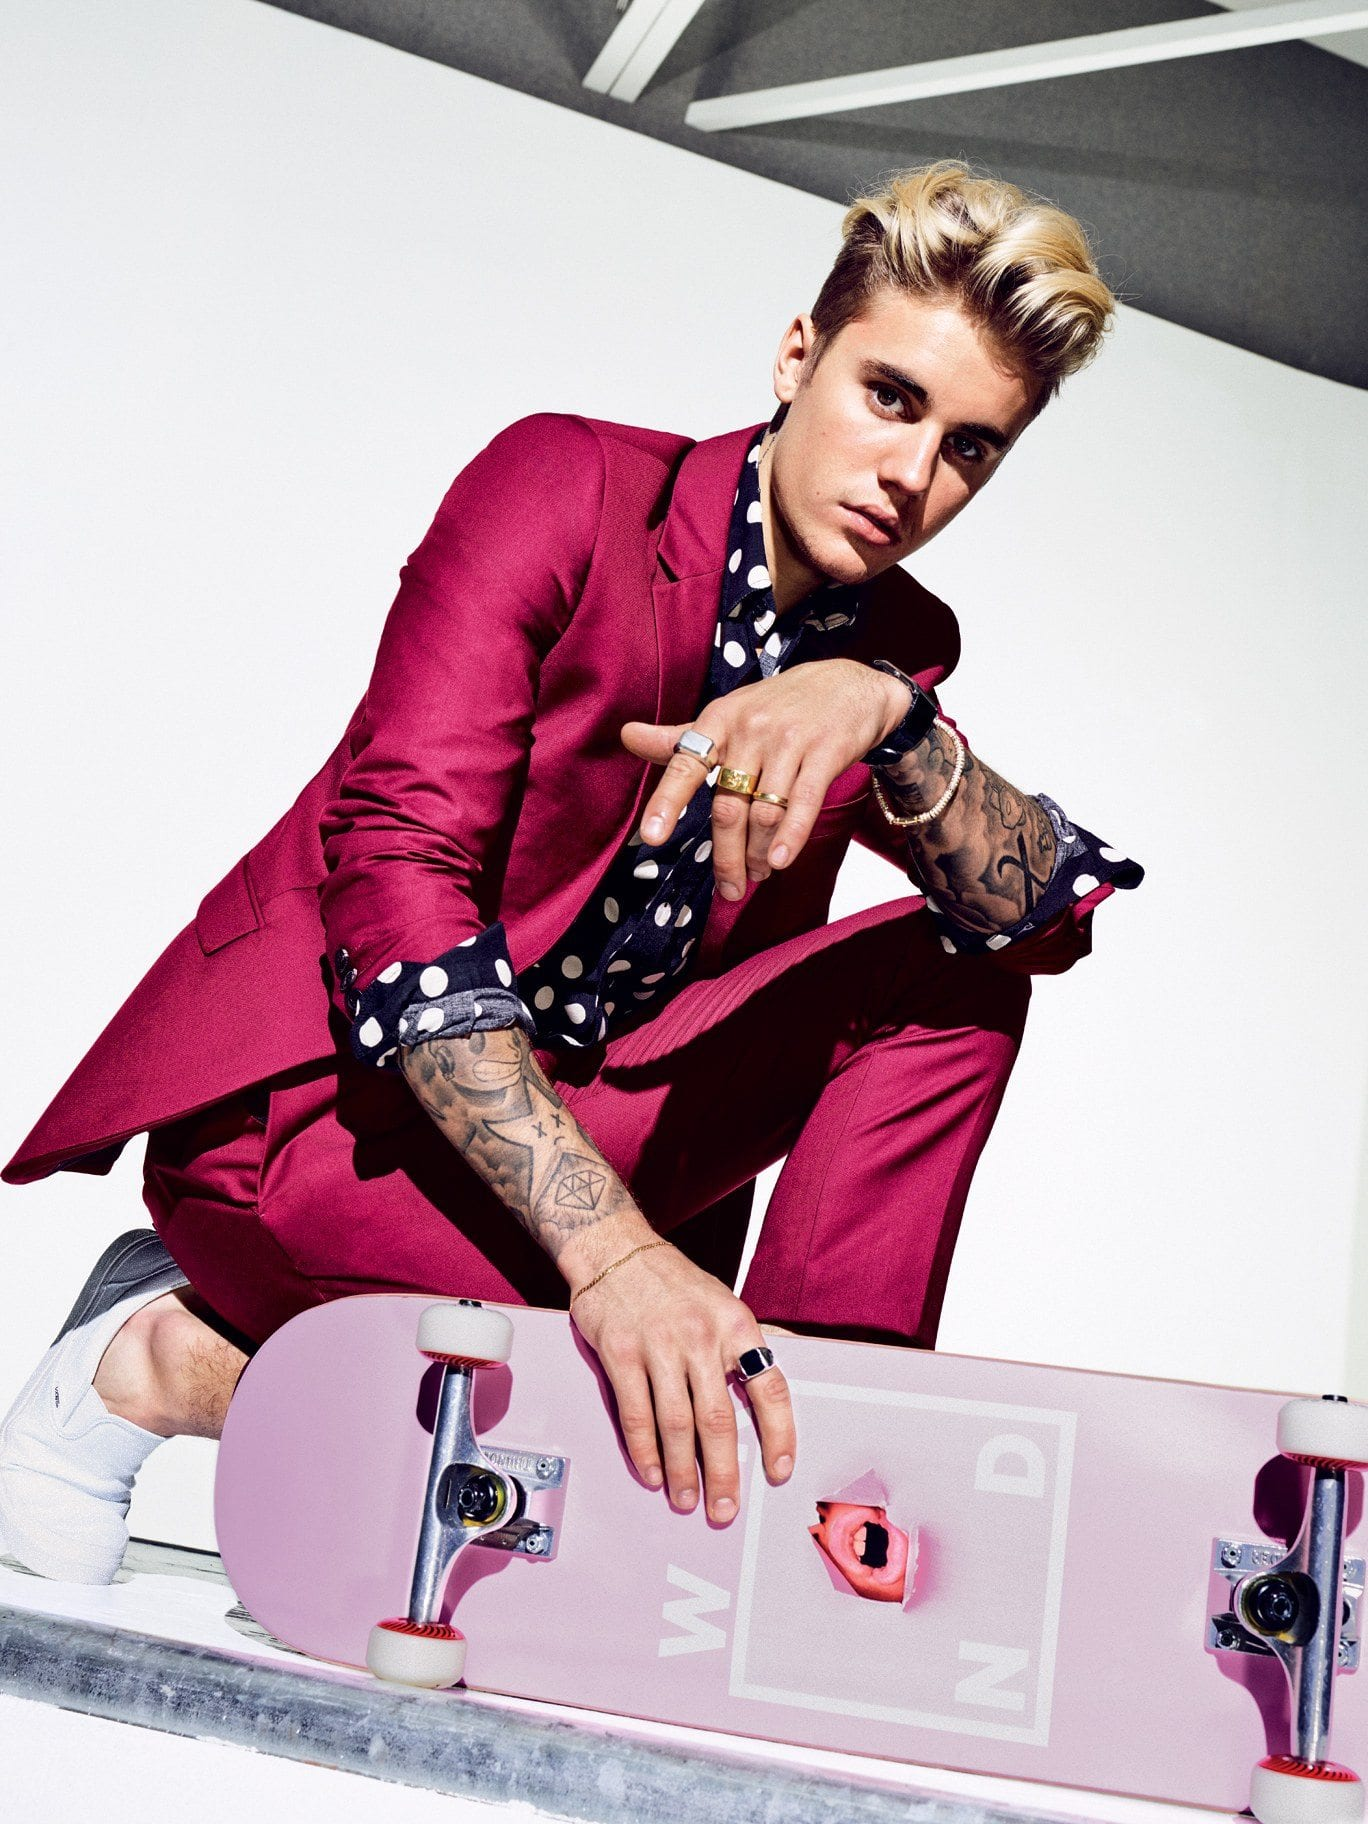 justin-beiber-pink-suit-for-young-boys 30 Amazing Men's Suits Combinations to Get Sharp Look